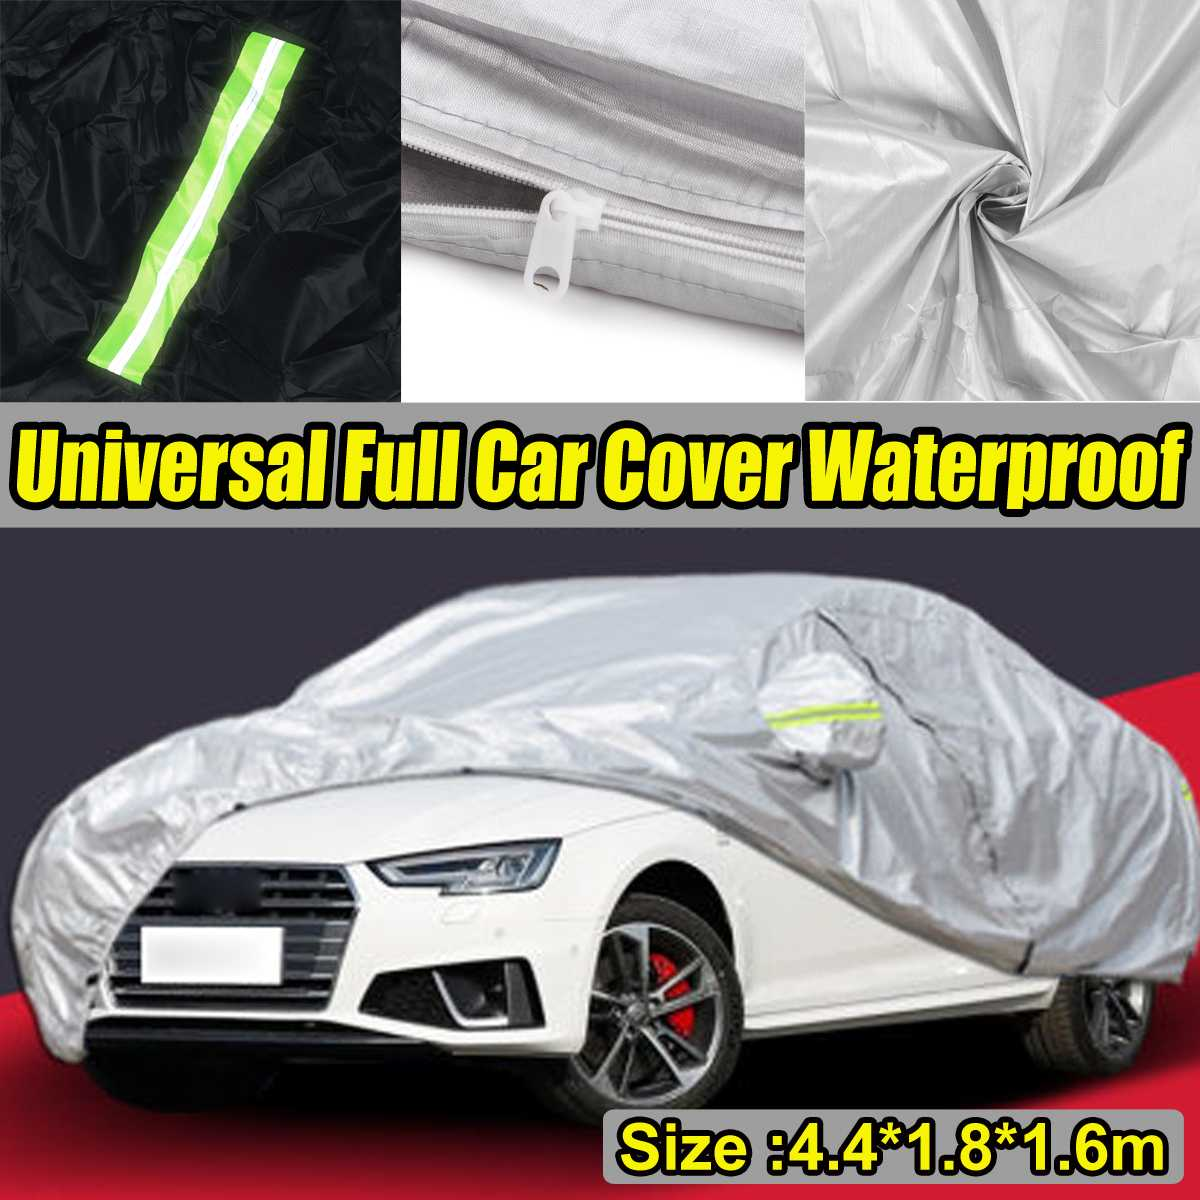 Exterior Car Cover Outdoor Protection Full Universal Car Covers Snow Cover Sunshade Waterproof Dustproof for Hatchback Sedan SUV